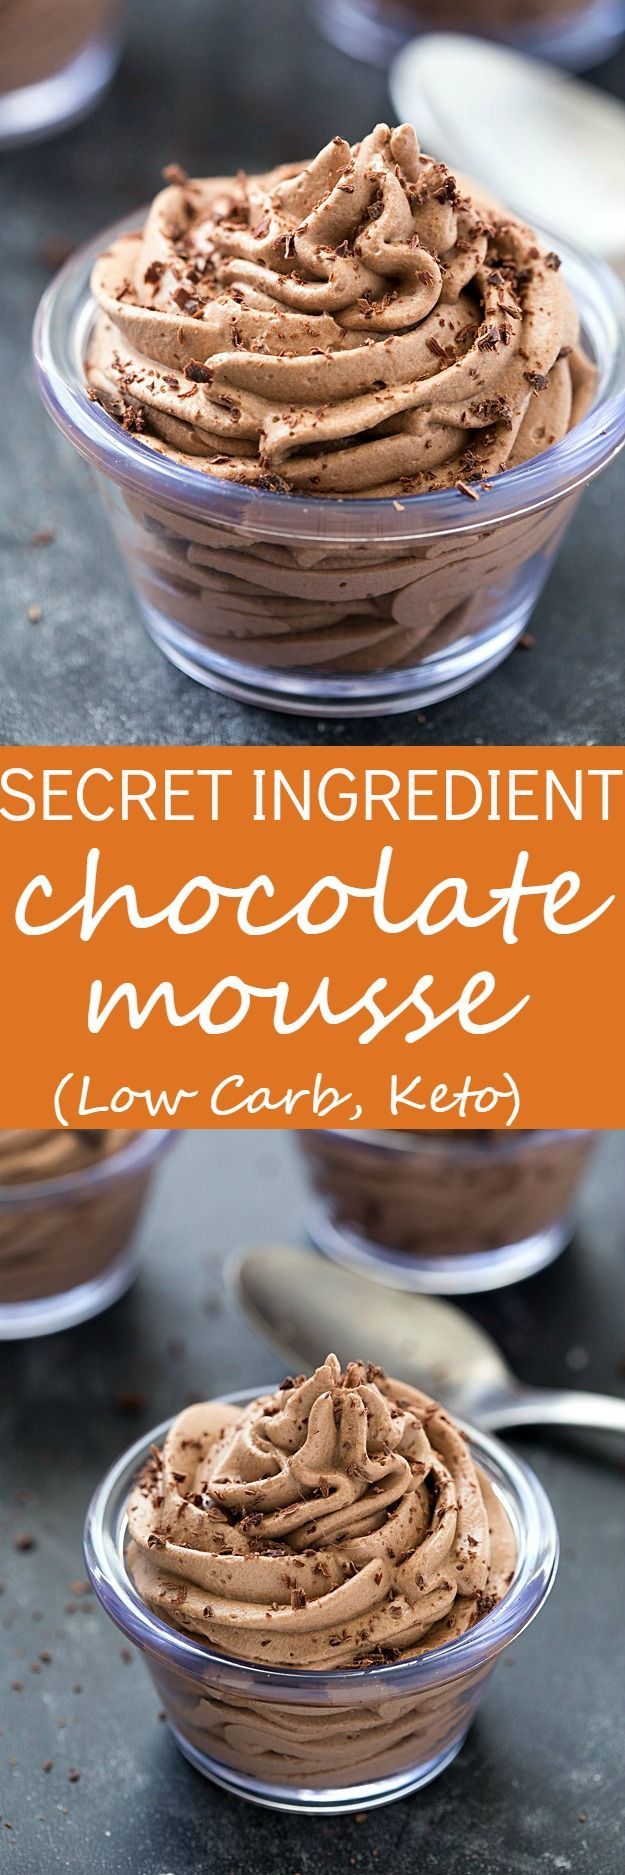 Secret Ingredient Easy Chocolate Mousse Recipe (Low Carb, Keto) - Create your amazing and incredibly easy chocolate mousse! The secret ingredient creates a whipped mousse that's secretly healthy. I bet you will not even be able to guess the secret ingredient!